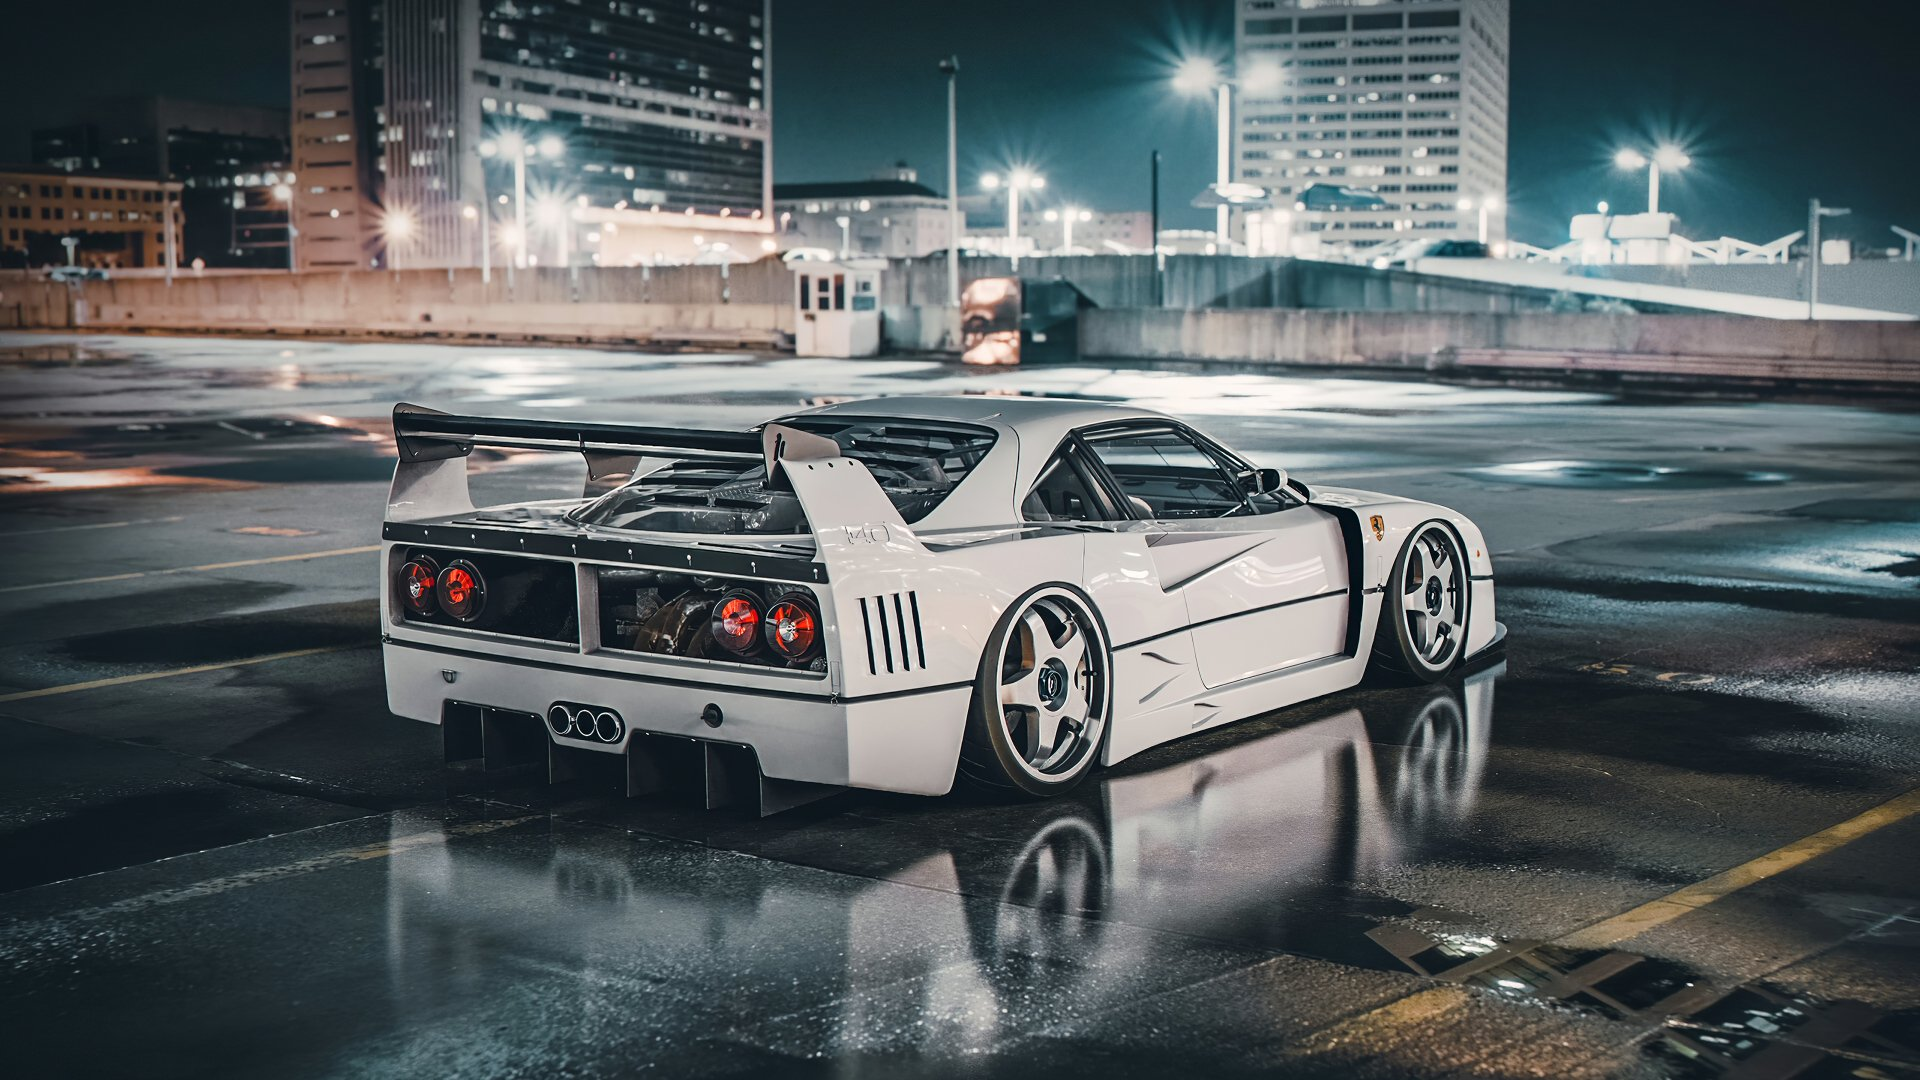 5 Ferrari F40 Lm Hd Wallpapers Background Images Wallpaper Abyss